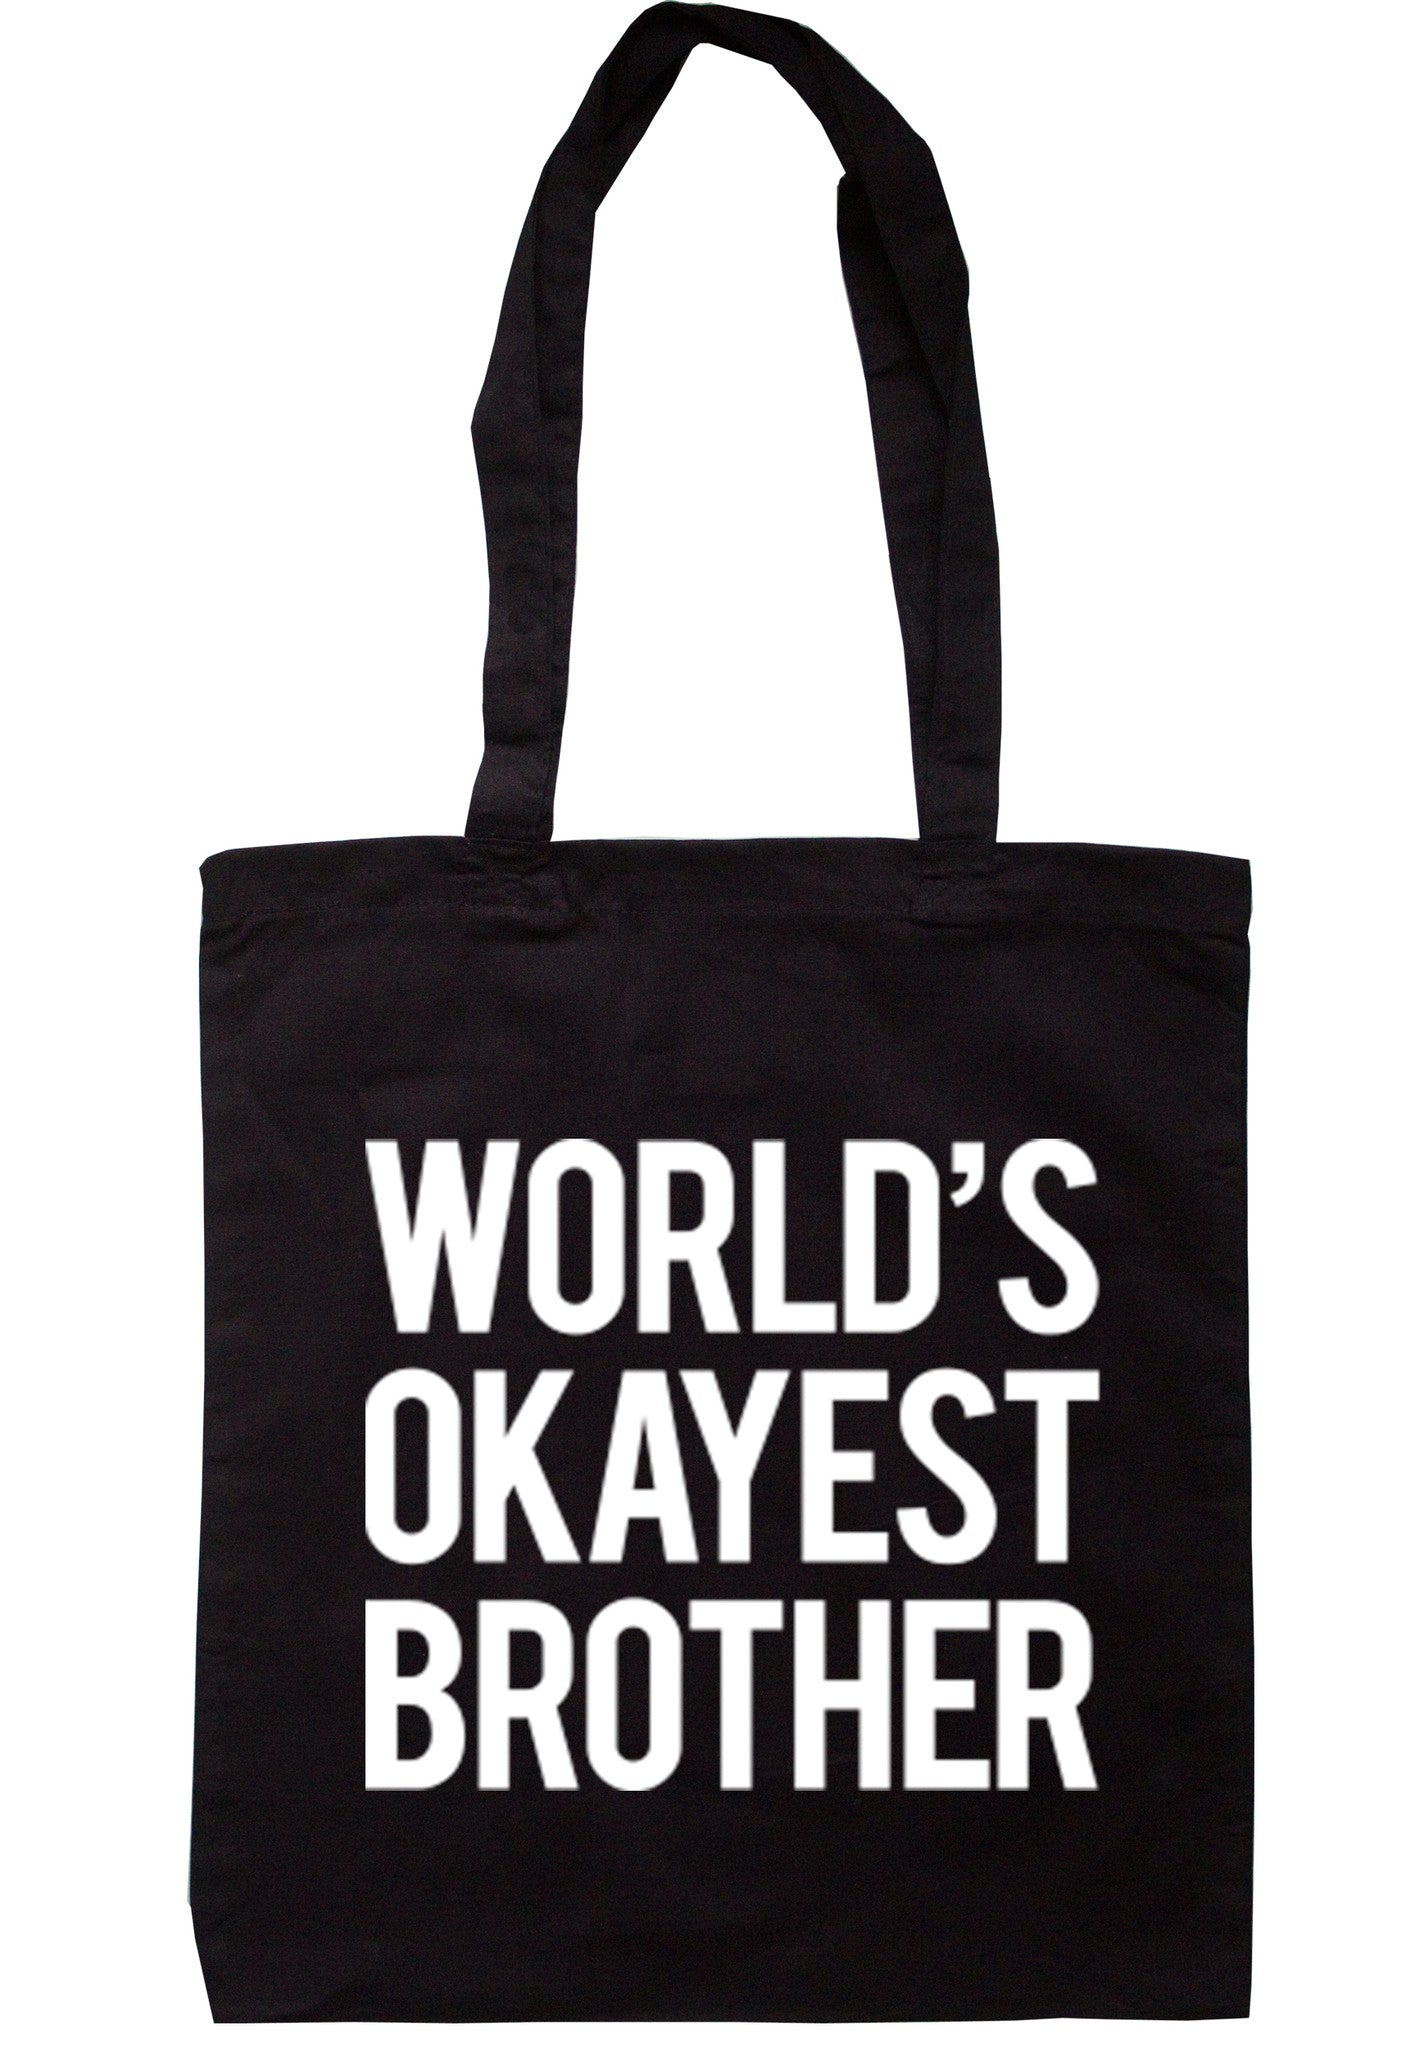 Worlds Okayest Brother Tote Bag TB0043 - Illustrated Identity Ltd.